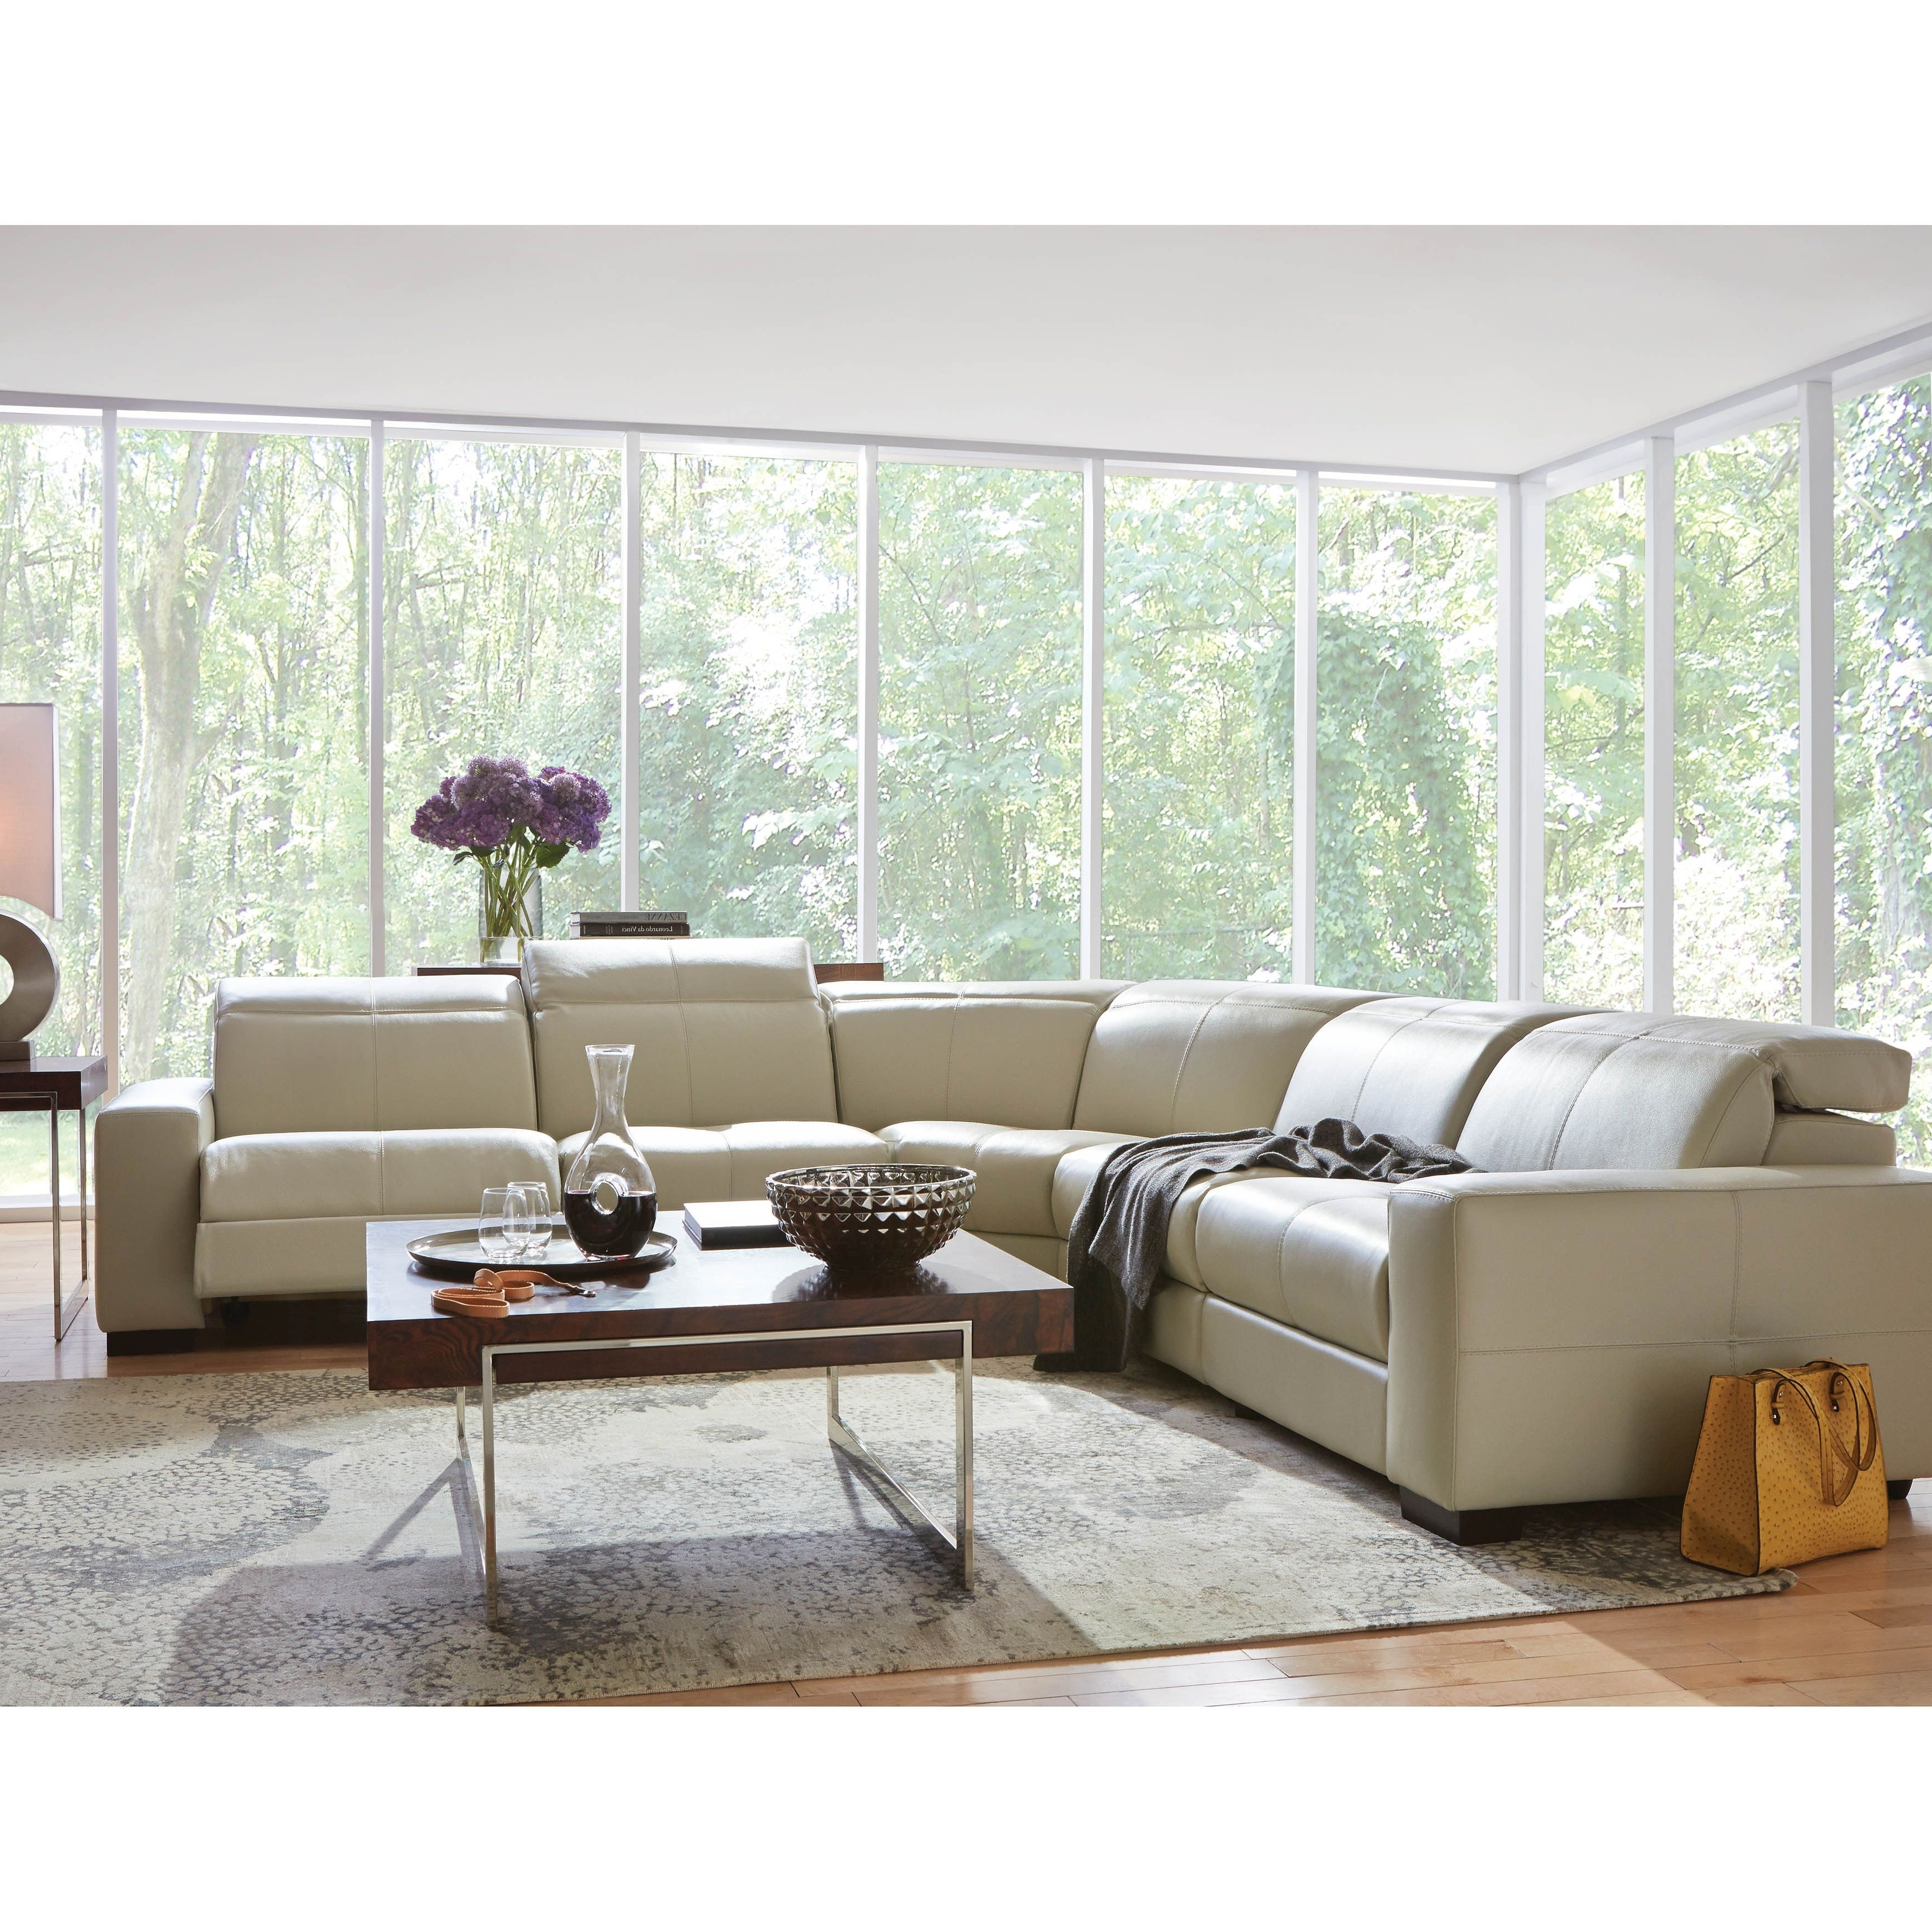 Cool, Clean, Contemporary And It Reclines! The Gianna Reclining With Regard To Fashionable Sectional Sofas Art Van (View 3 of 15)